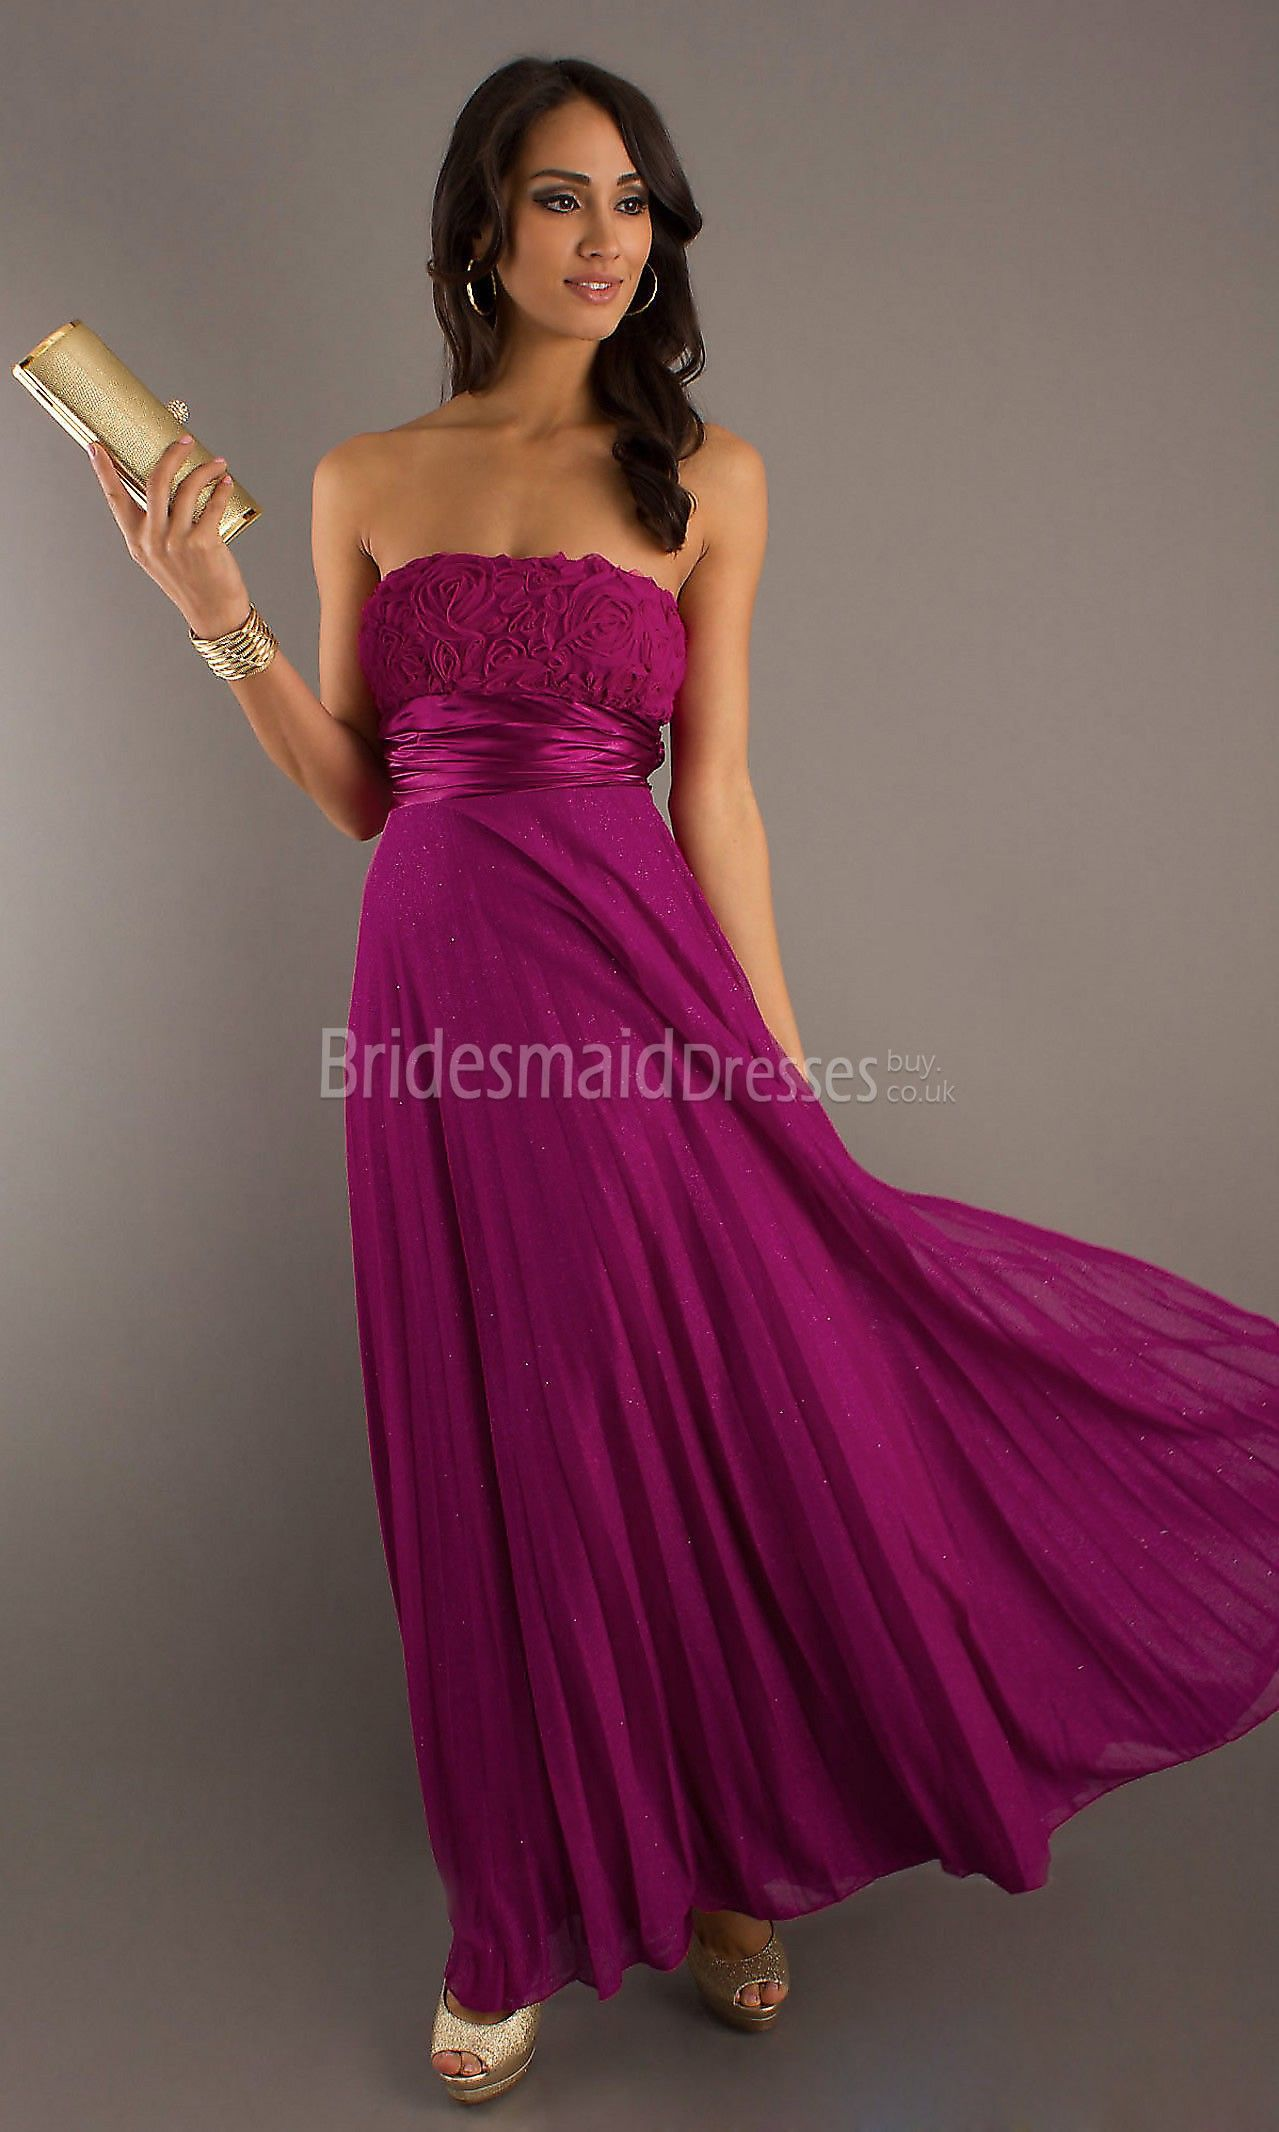 purple bridesmaid dresses | Wedding: Dresses, Receptions, Etc ...